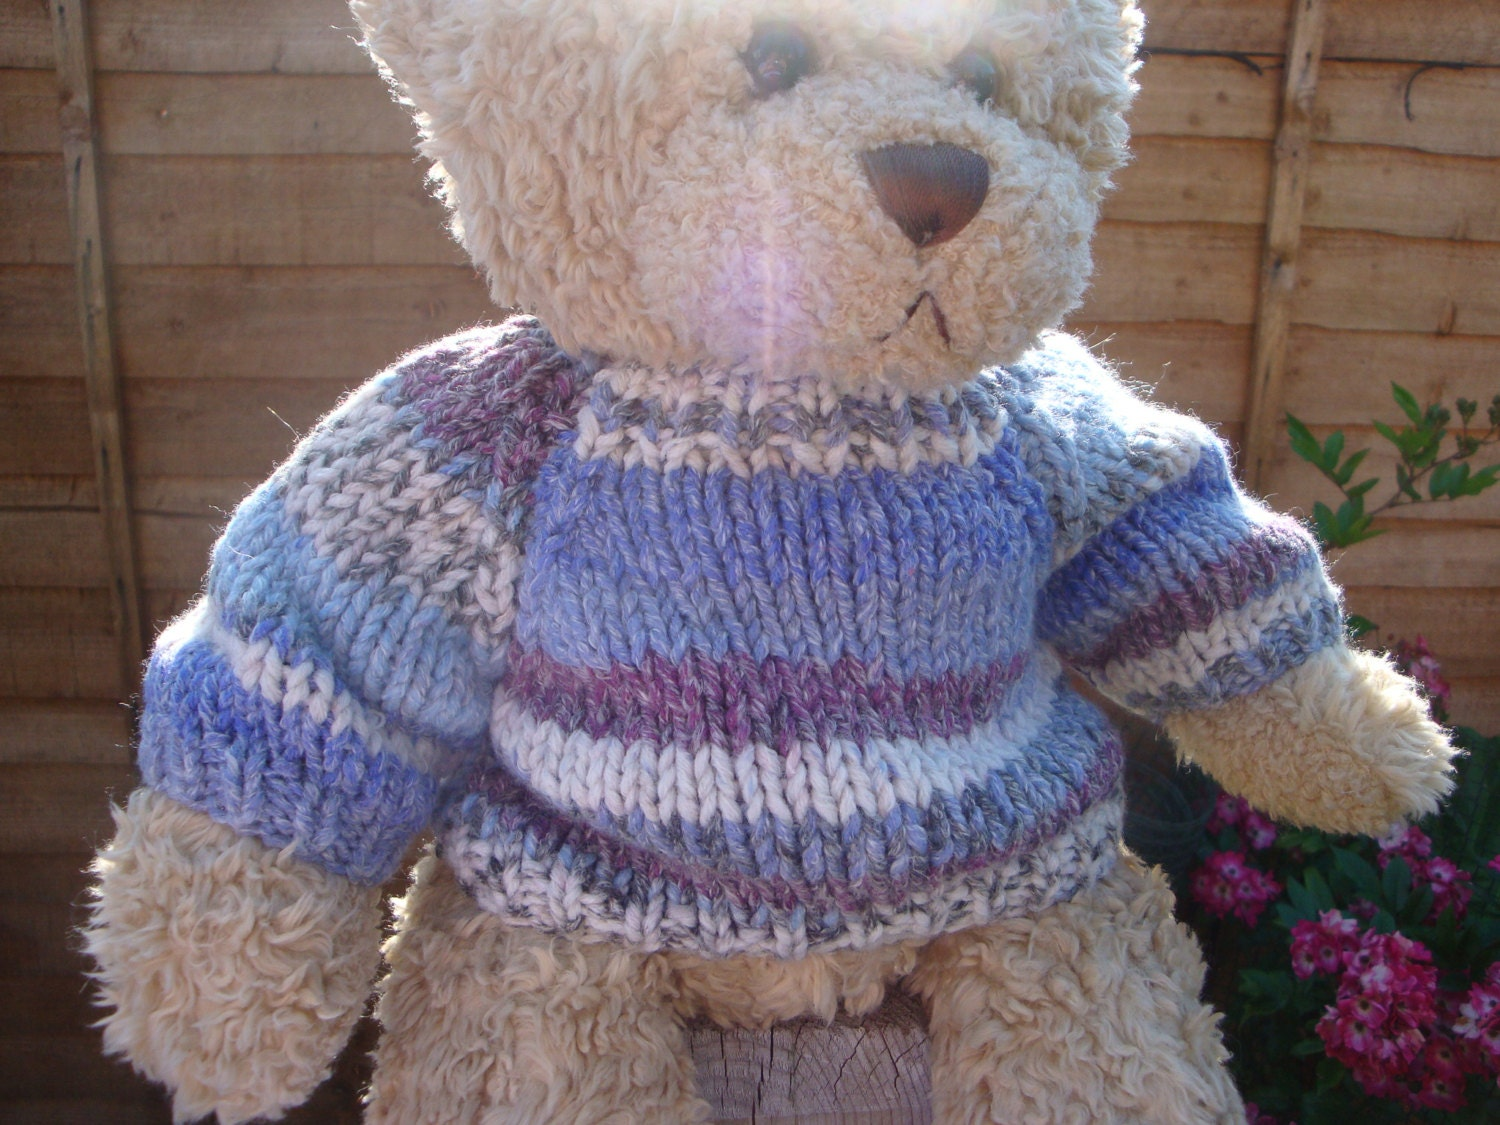 Knitting Patterns For Teddy Bears : Chunky Teddy Bear Sweater Hand knitted Fair Isle fits